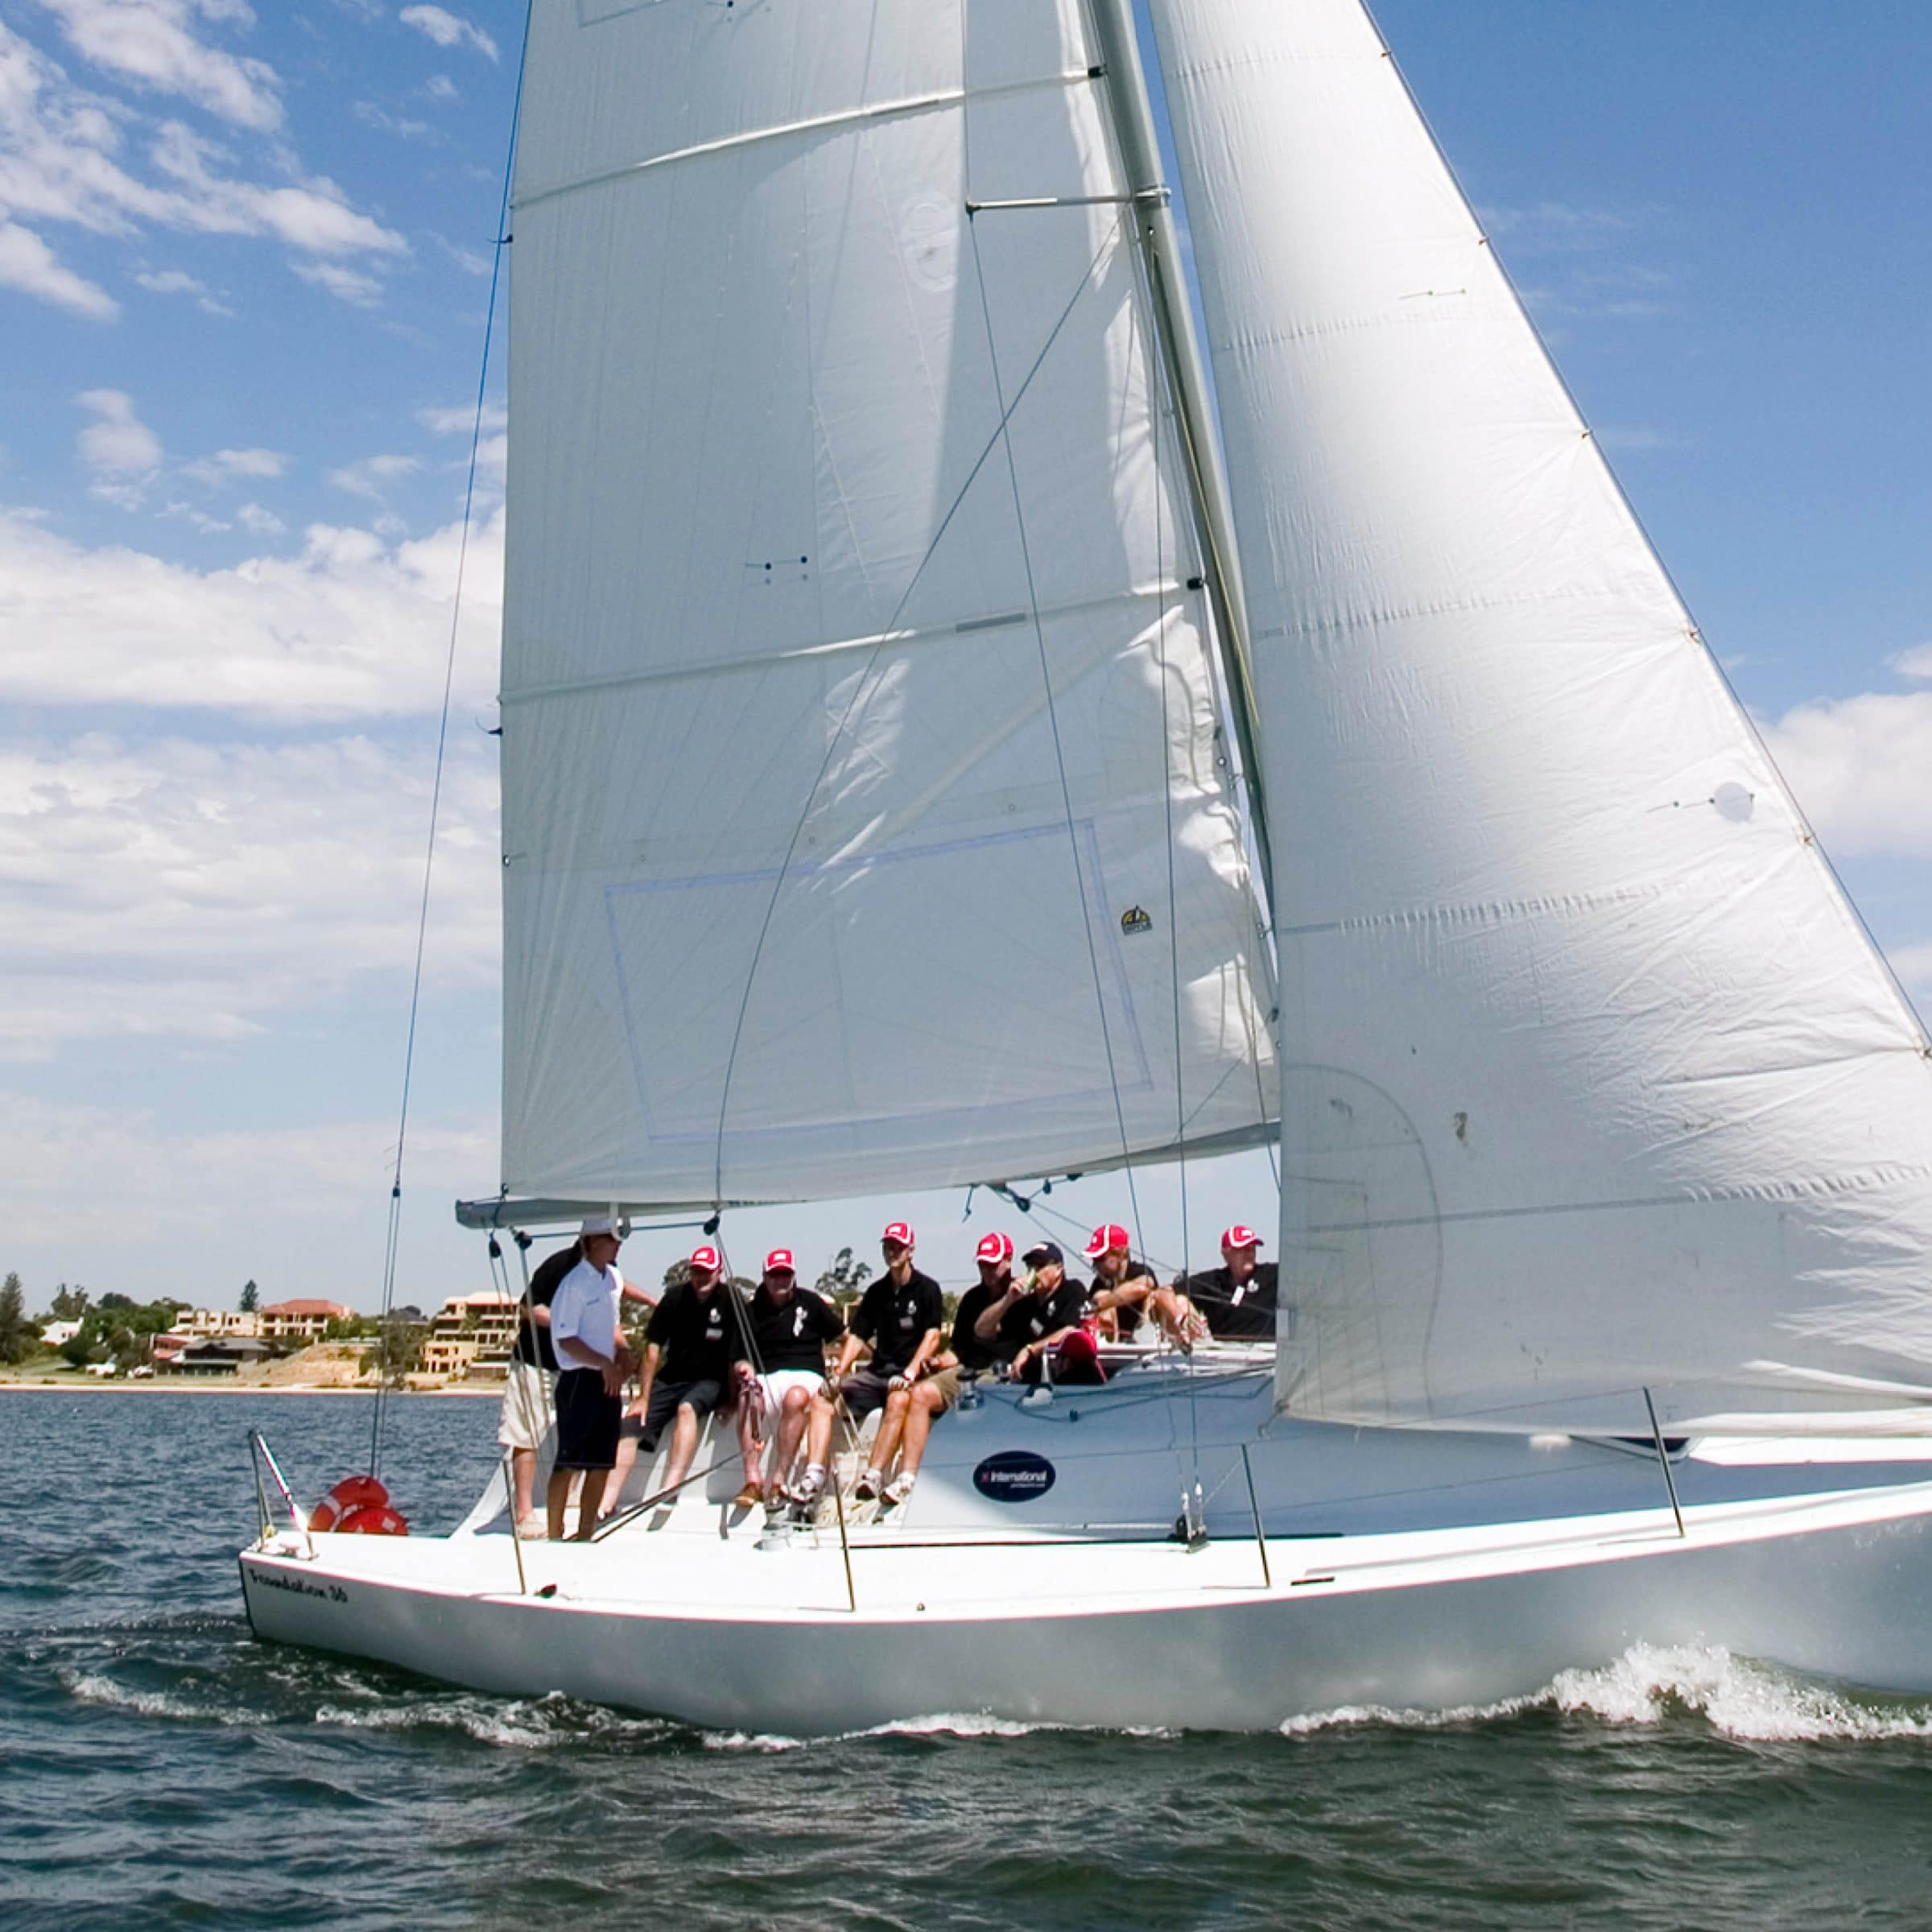 corporate sailing charter with swan river sailing in perth